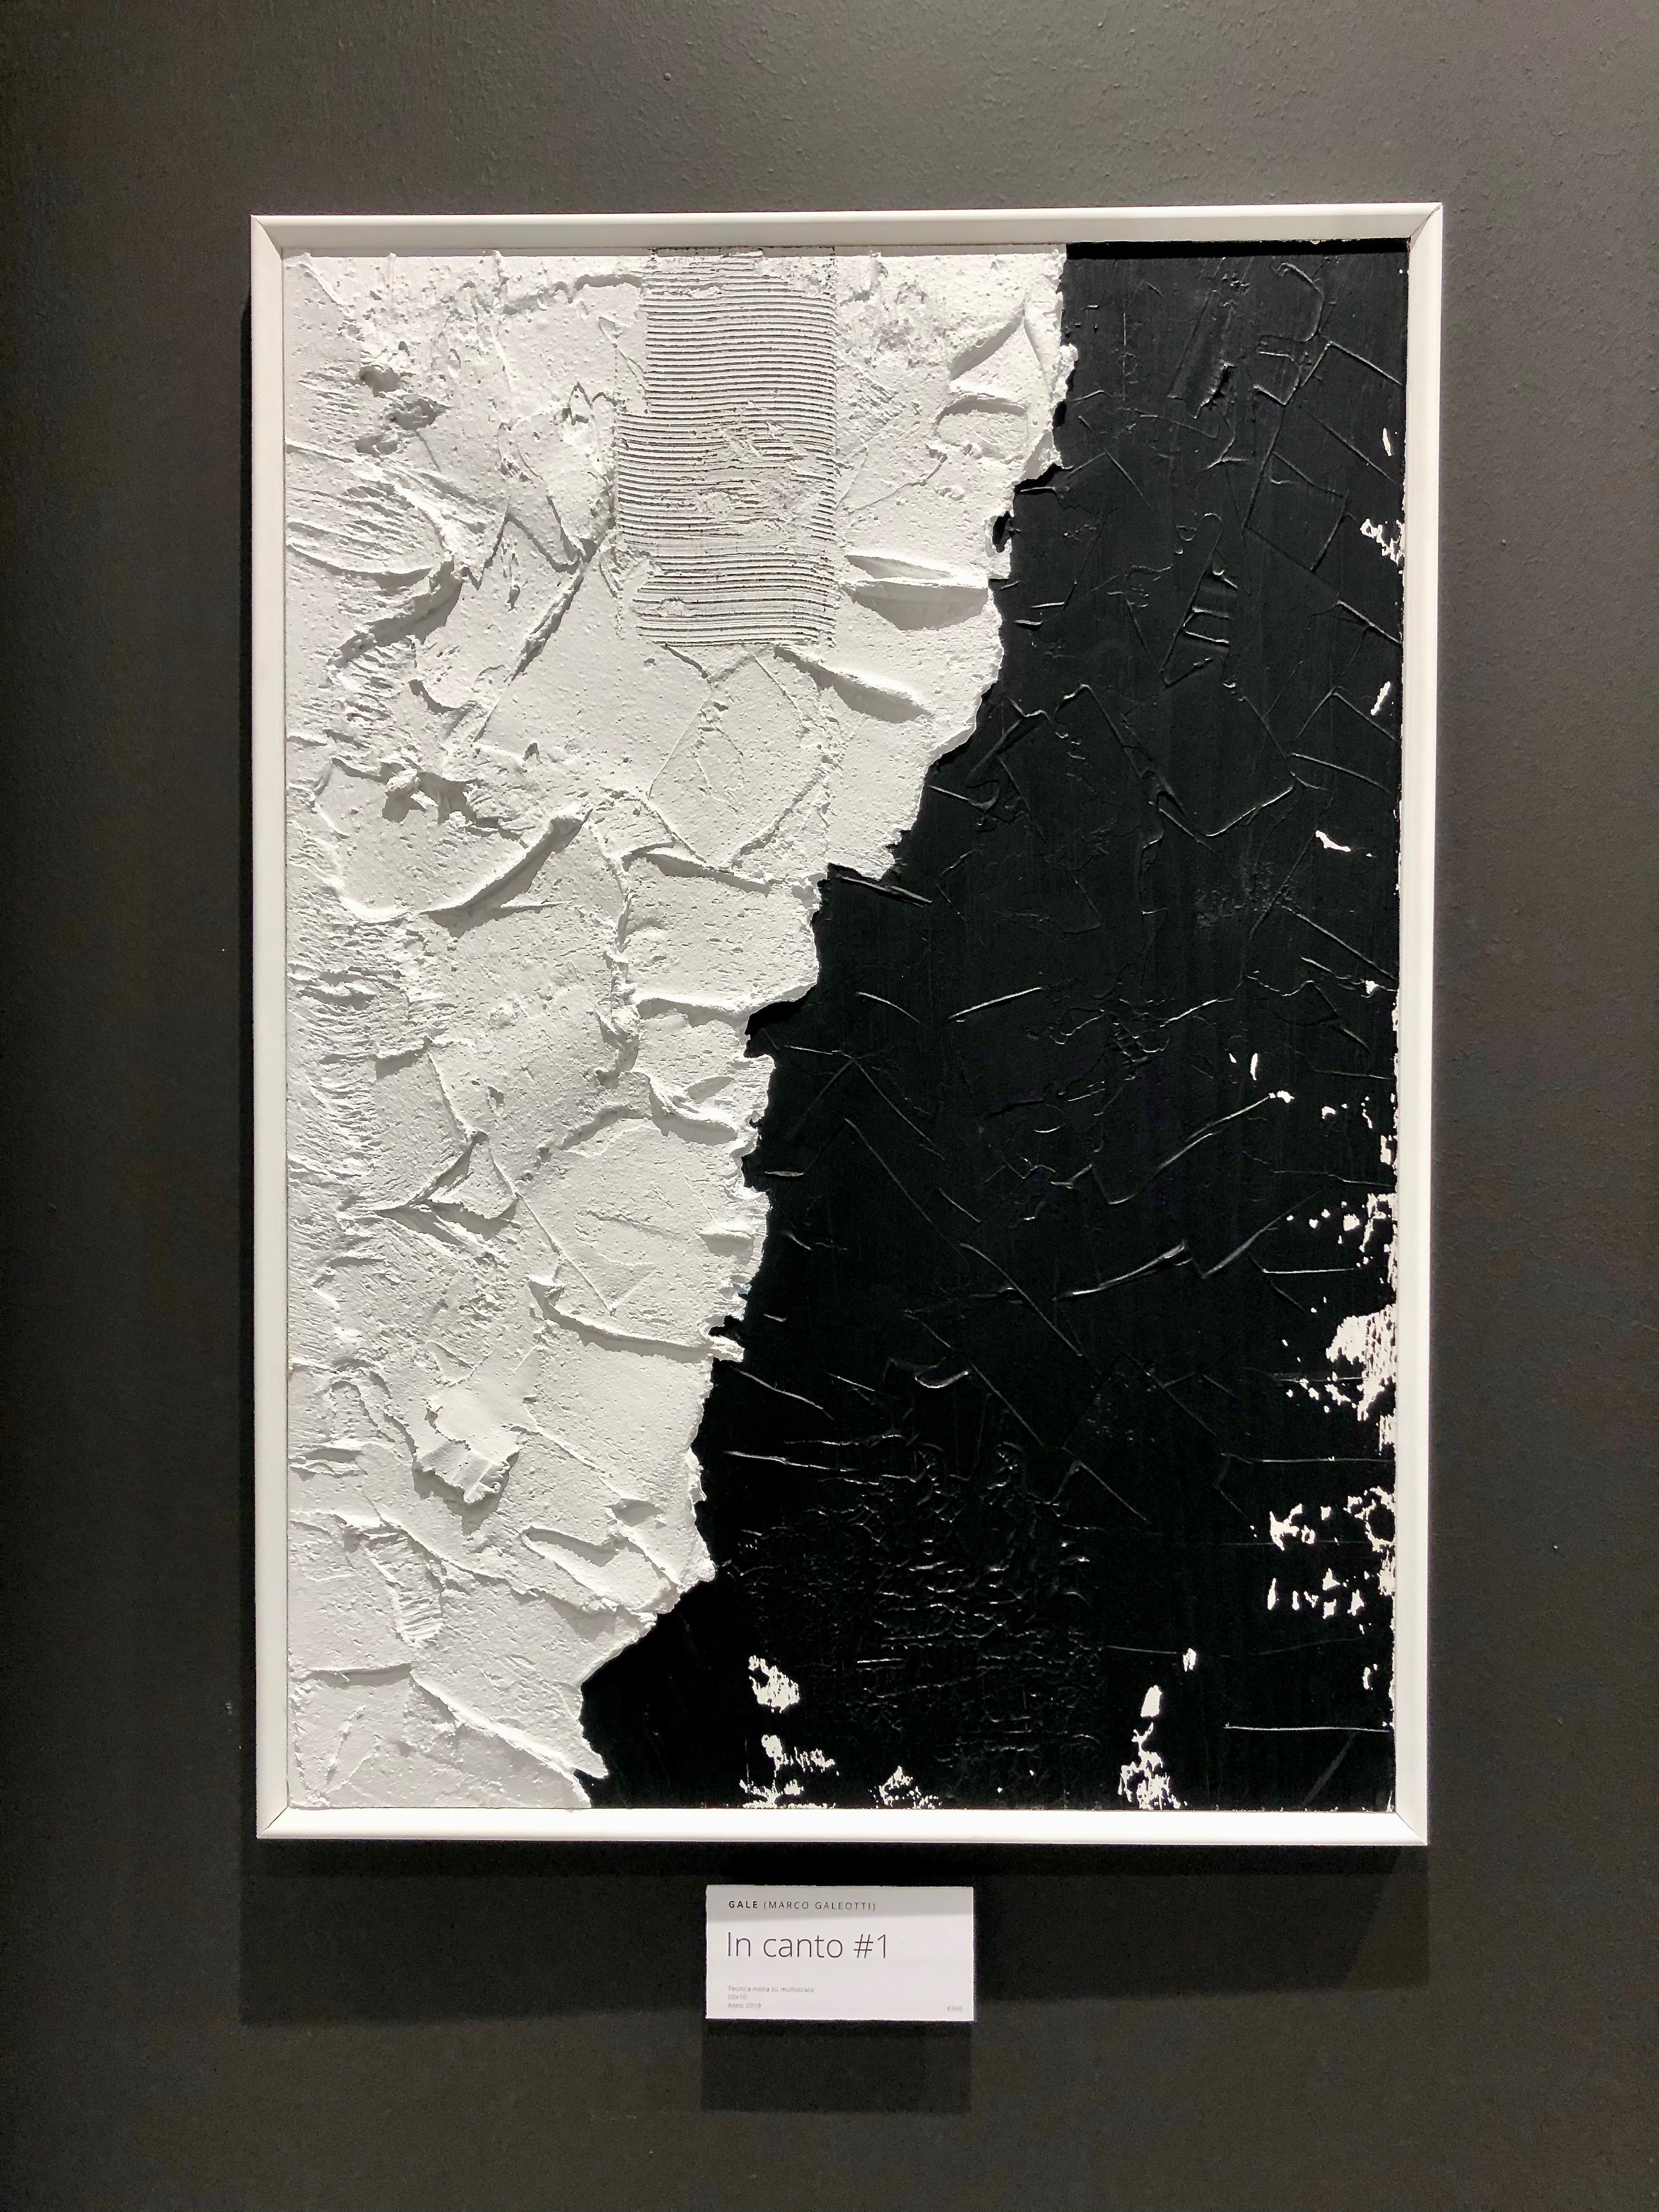 IN CANTO #1 - Plaster and acrylic on 12mm plywood, 50x70cm, framed - AVAILABLE